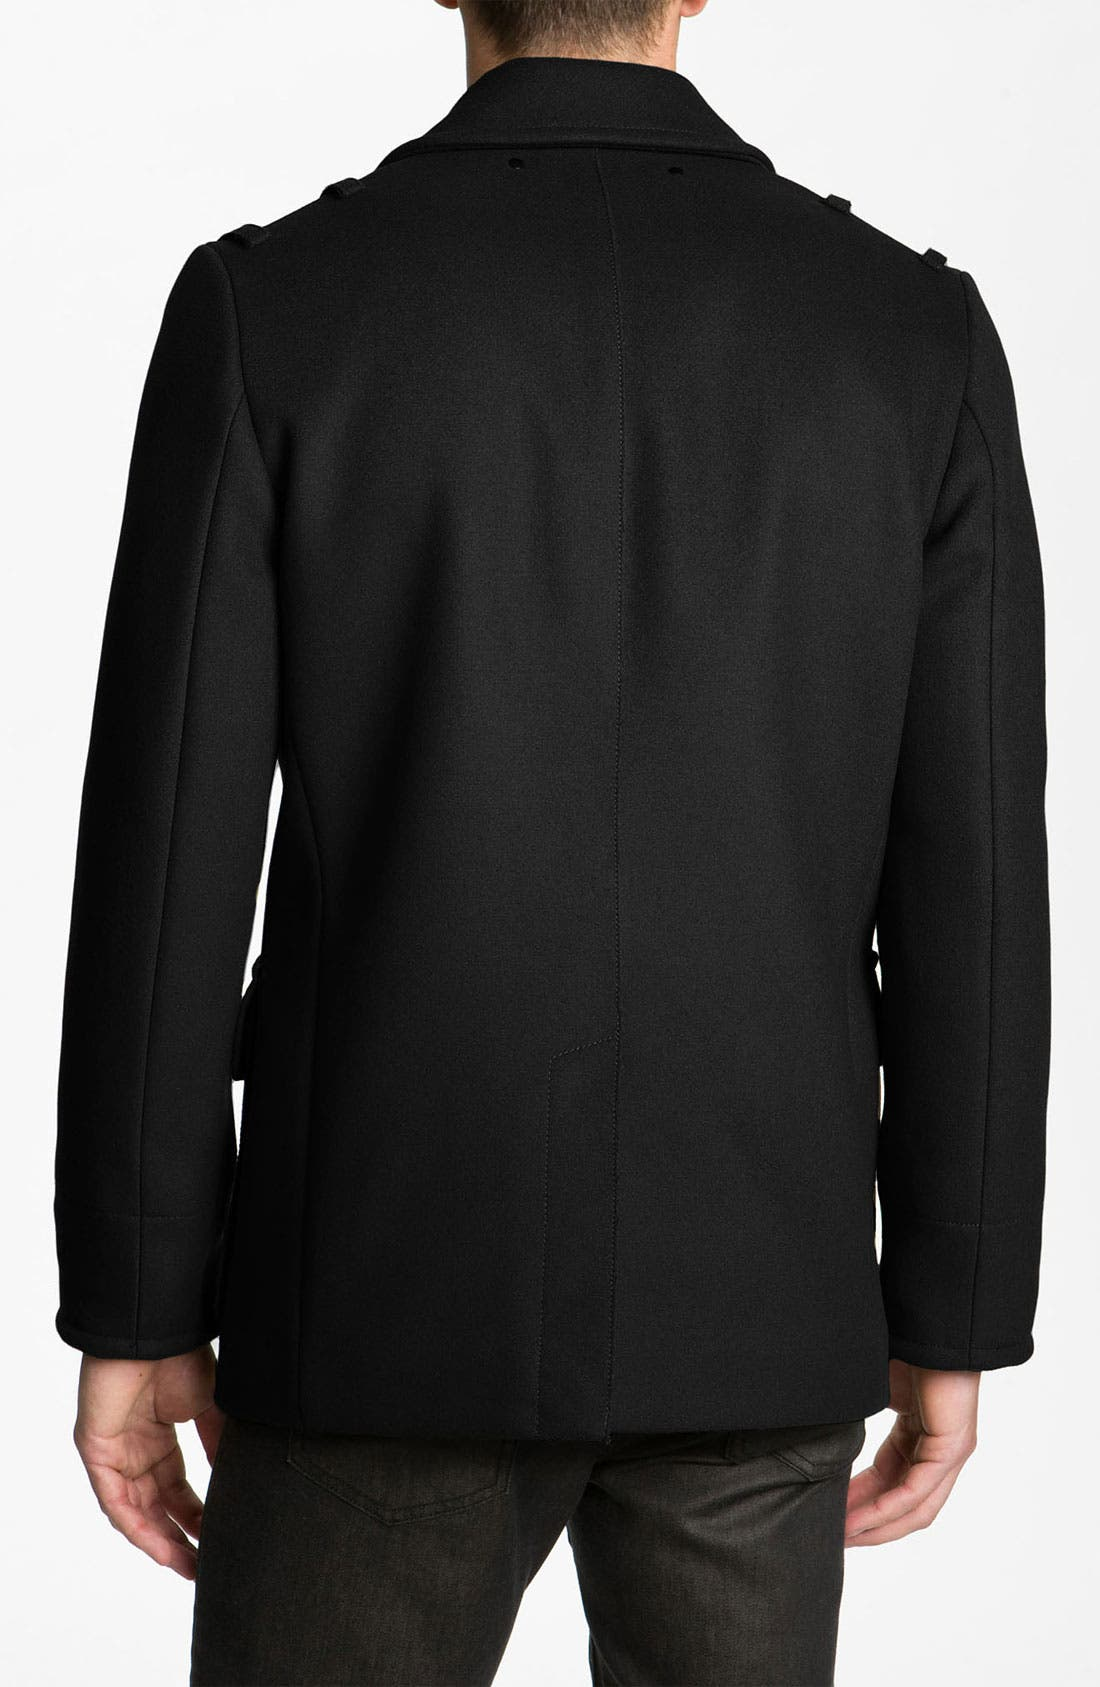 'Leo' Double Breasted Peacoat,                             Alternate thumbnail 2, color,                             001